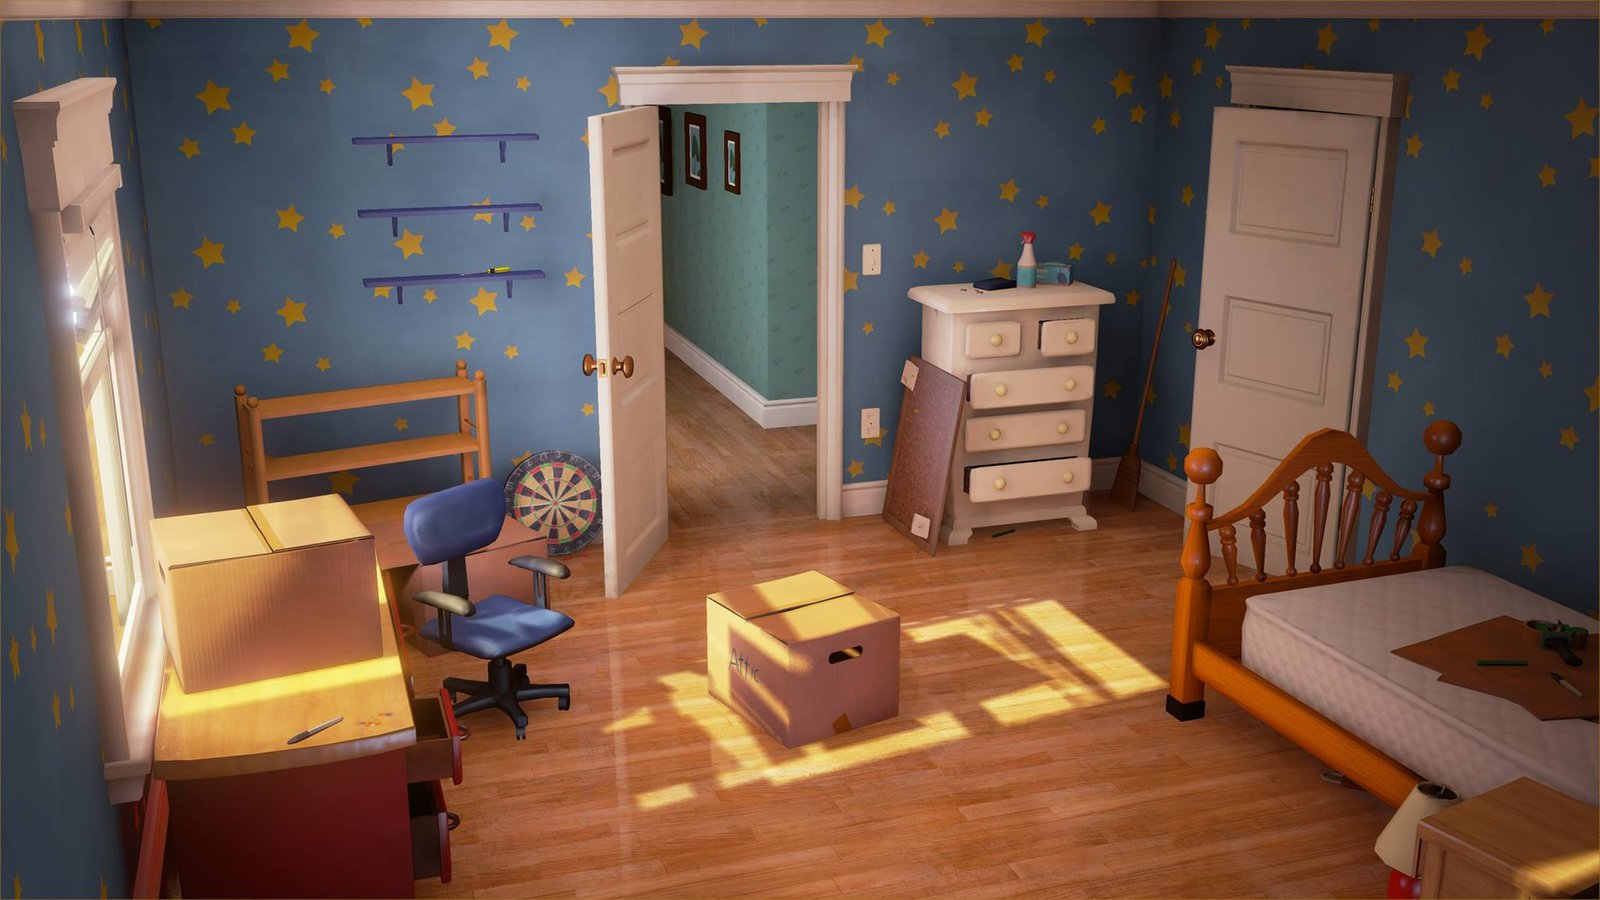 Toy Story- Andy's Room Group Project